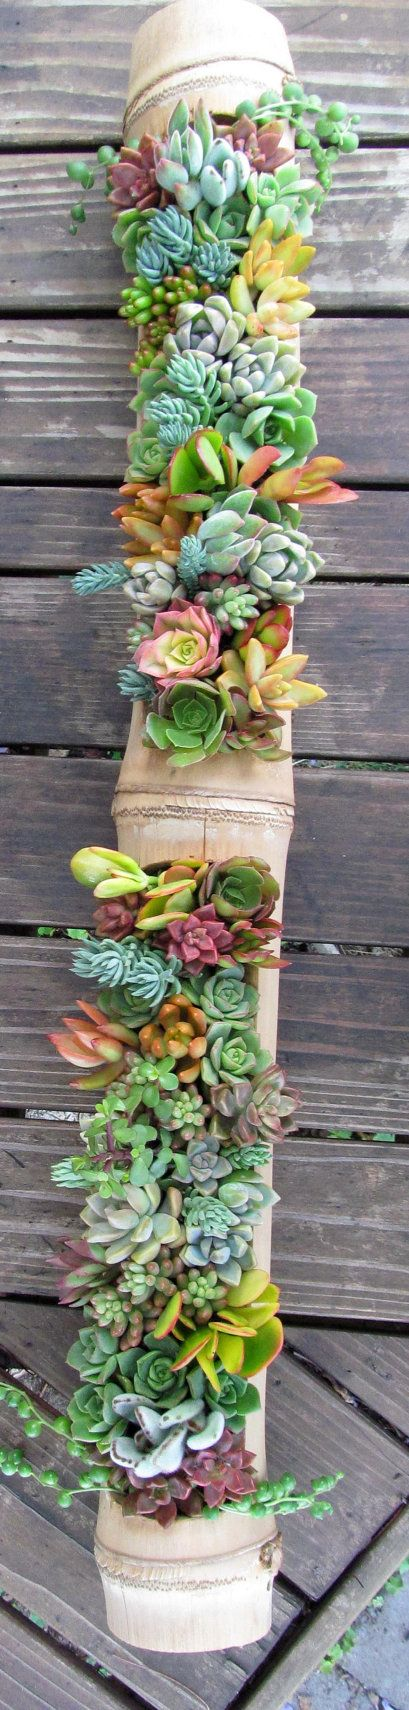 Succulents in Bamboo Hanger - Lovely Living Art!